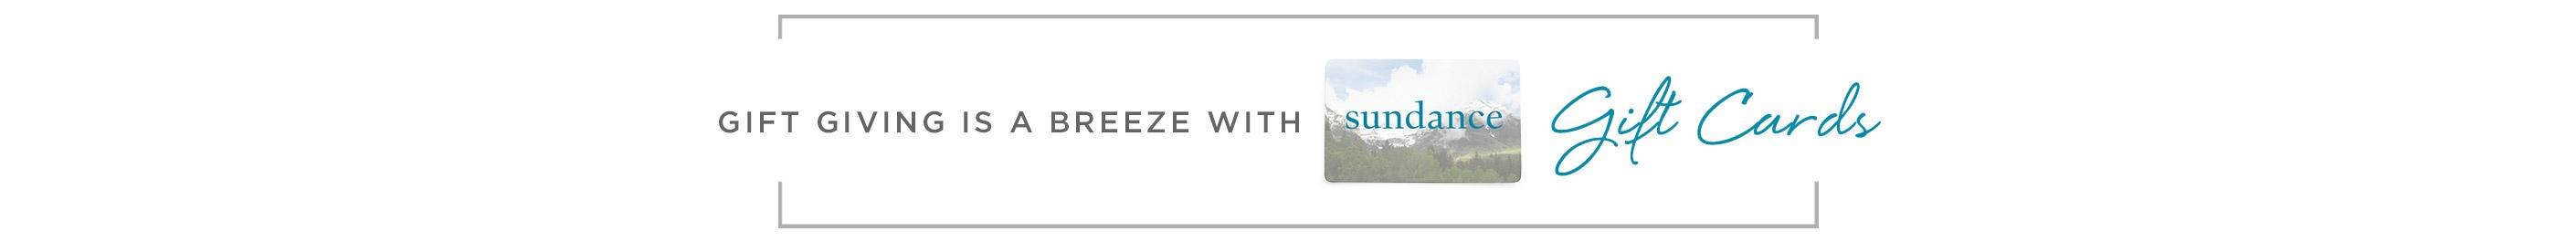 The Gift of Coice - Sundance Gift Cards